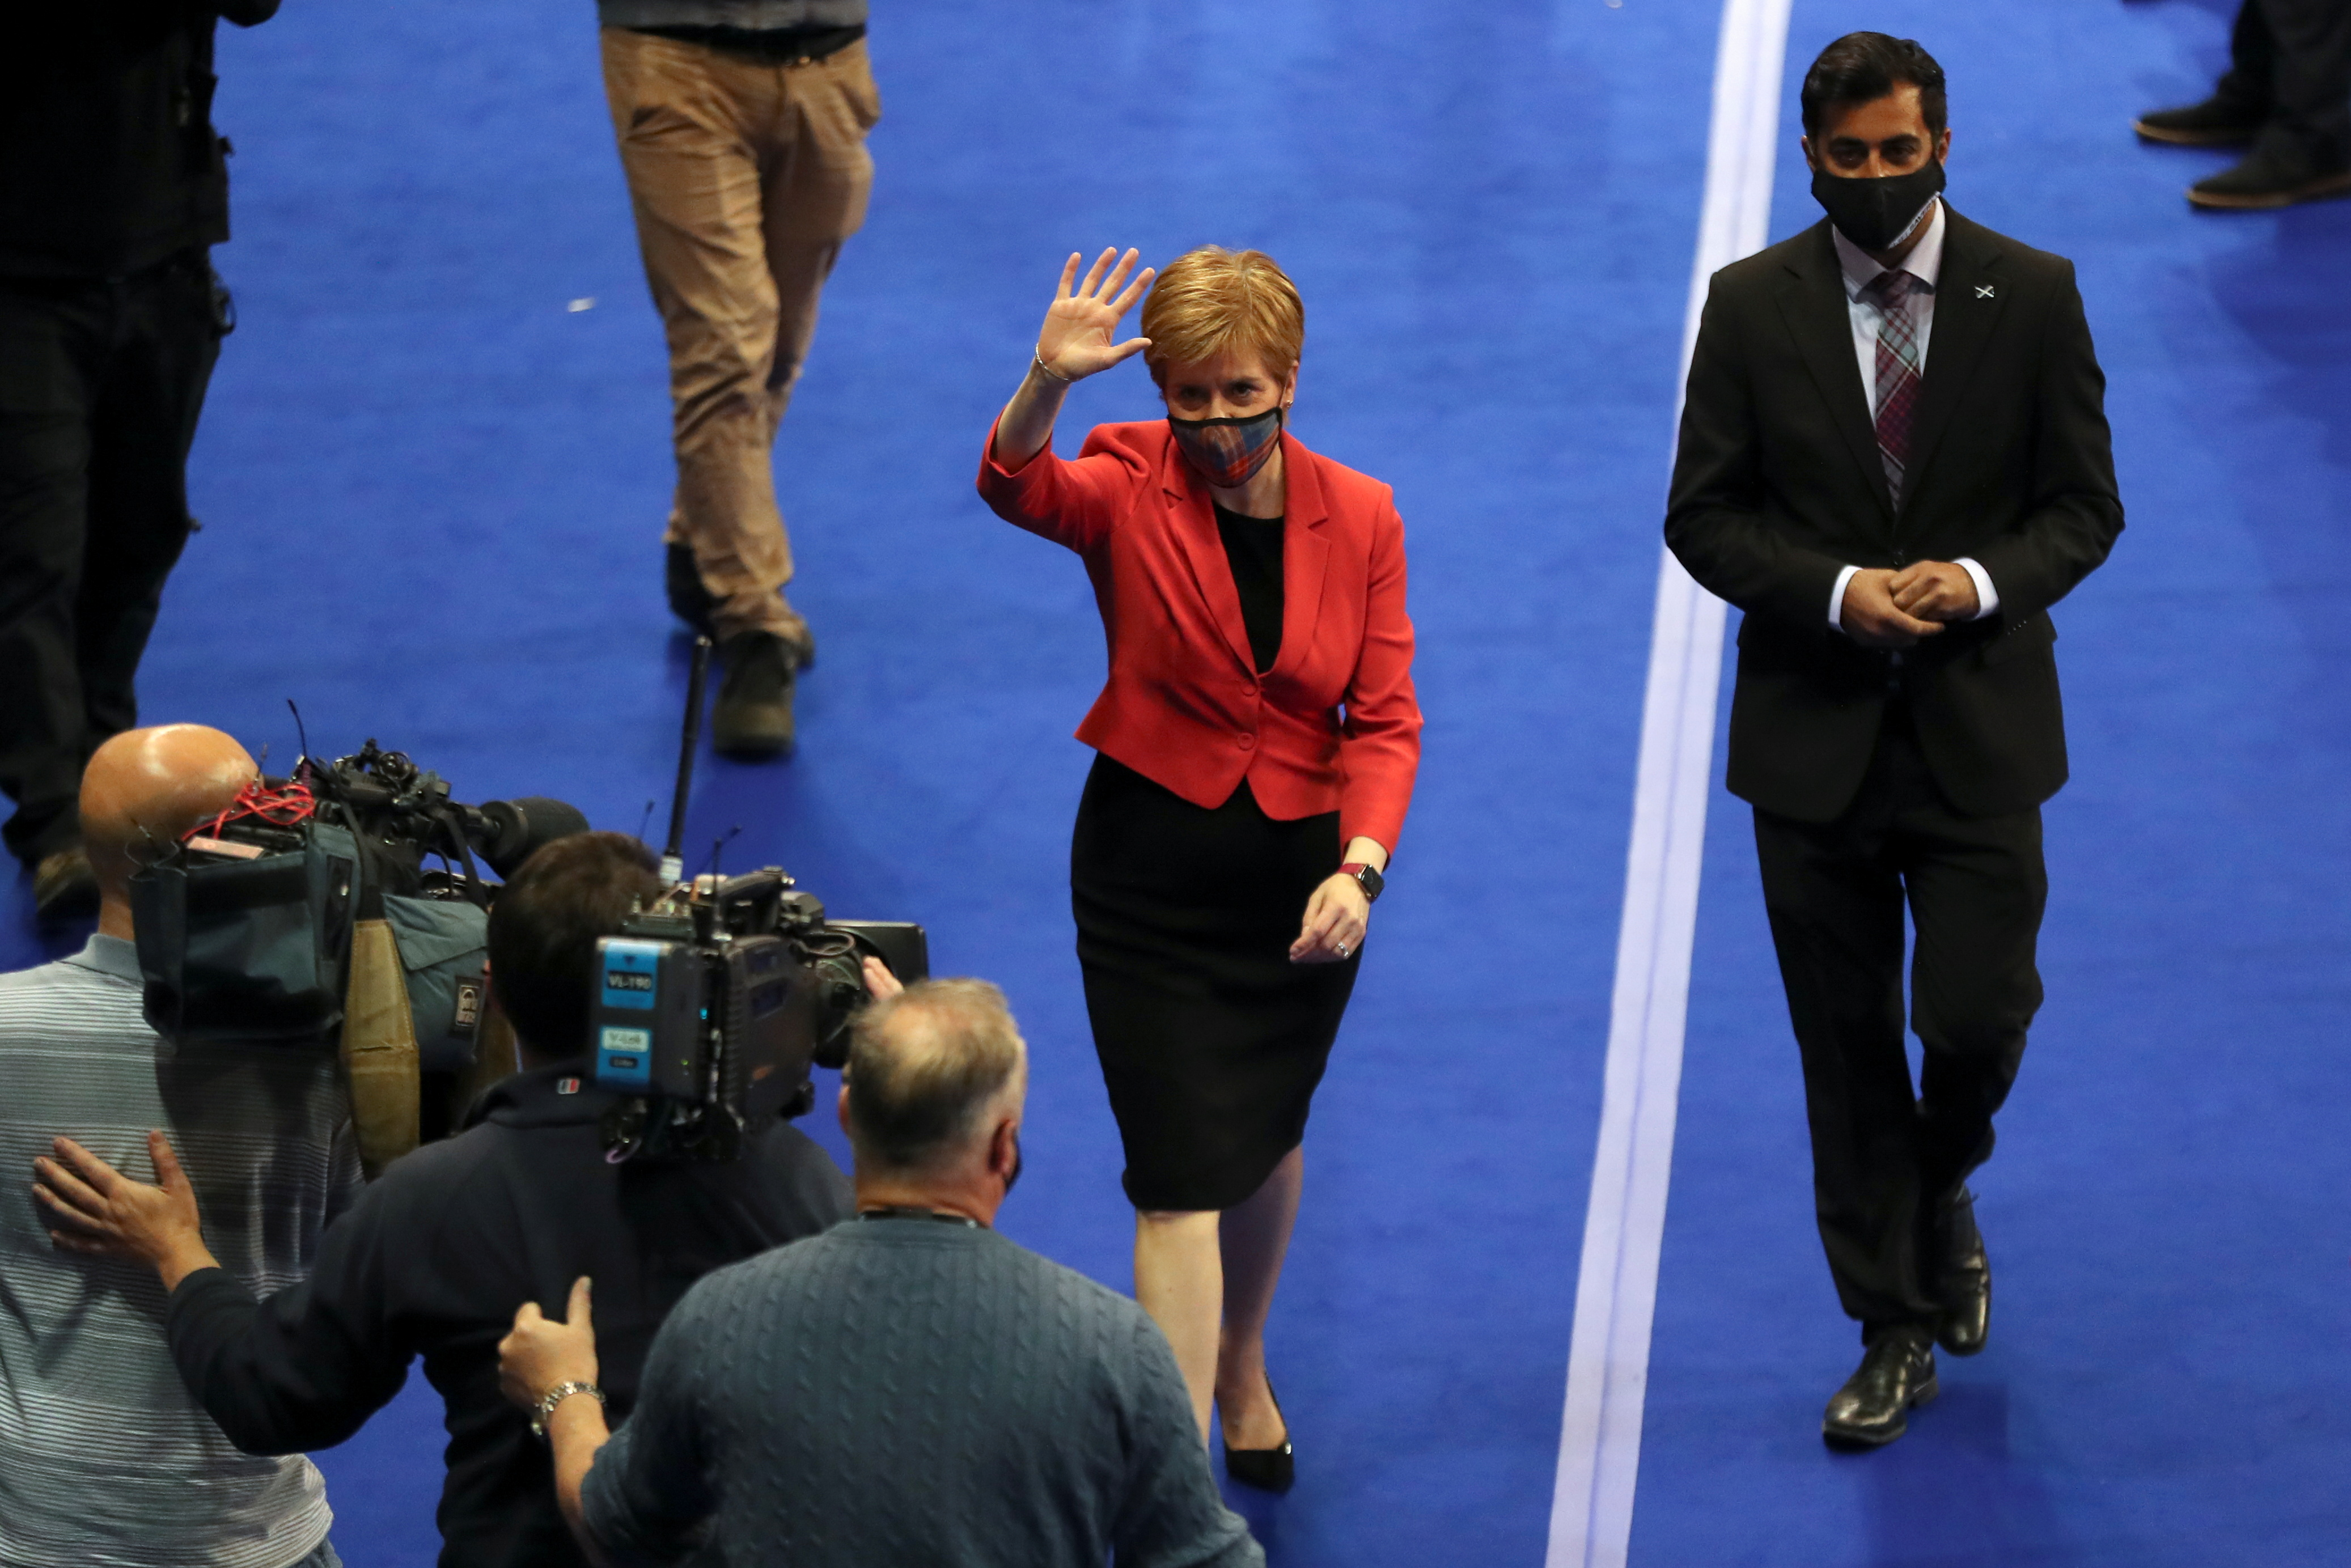 Scottish First Minister Nicola Sturgeon visits a counting centre as votes are counted for the Scottish Parliamentary election, in Glasgow, Scotland, Britain, May 7, 2021. REUTERS/Russell Cheyne